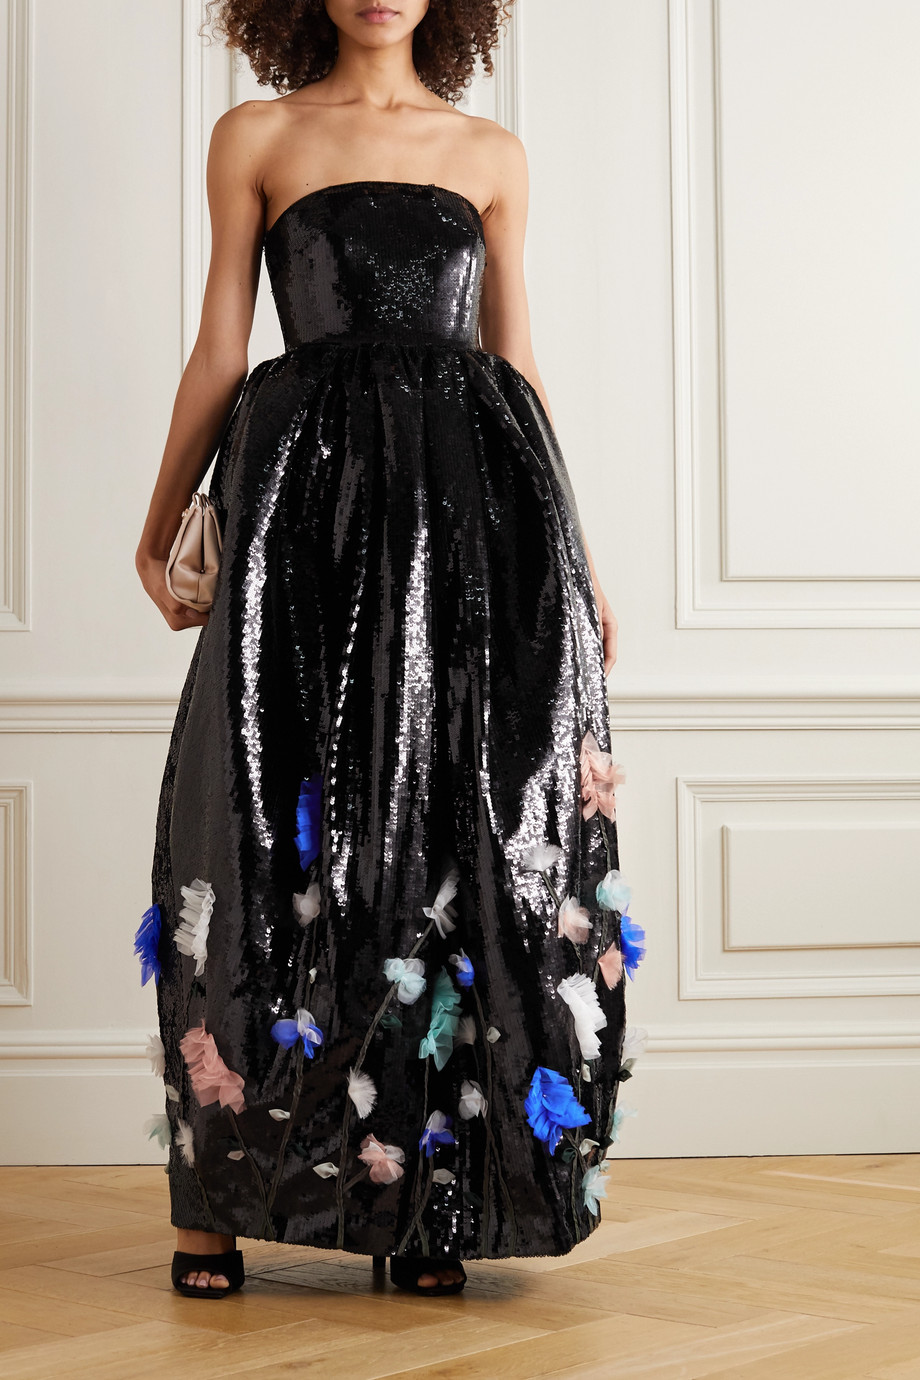 Huishan Zhang Filomena strapless appliquéd sequined tulle gown